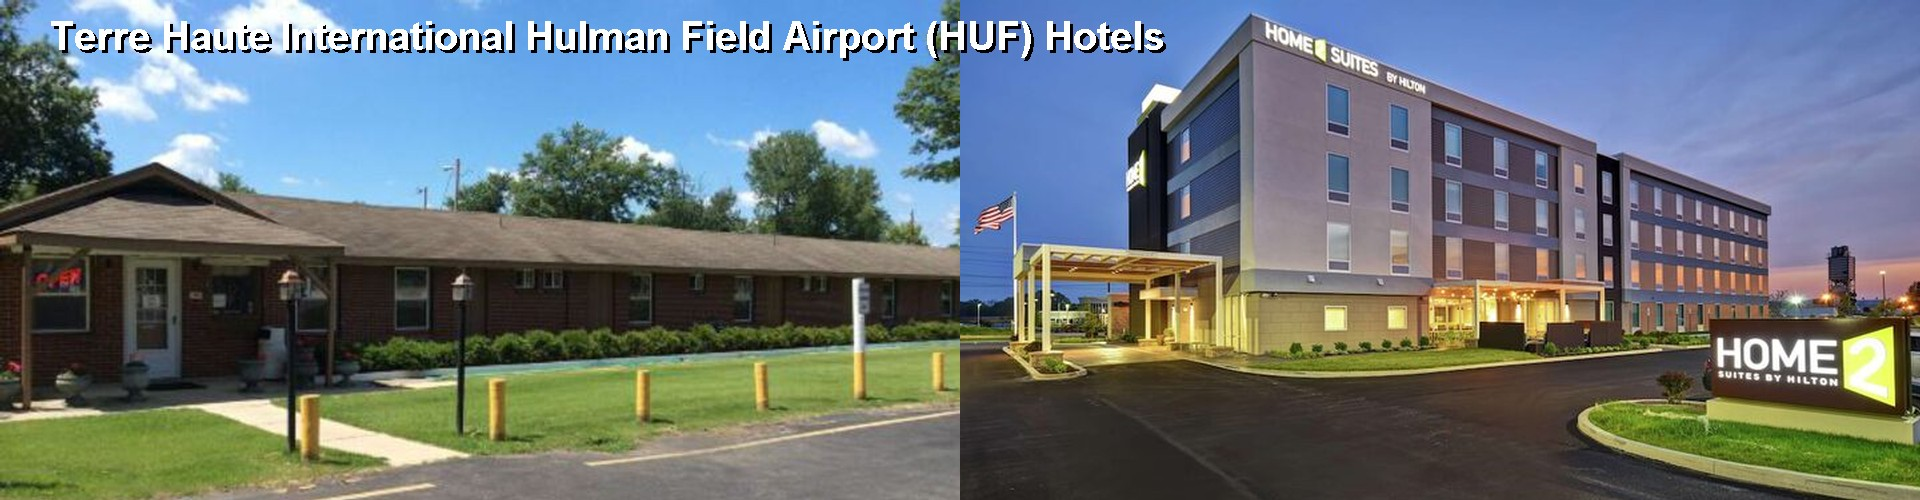 3 Best Hotels near Terre Haute International Hulman Field Airport (HUF)